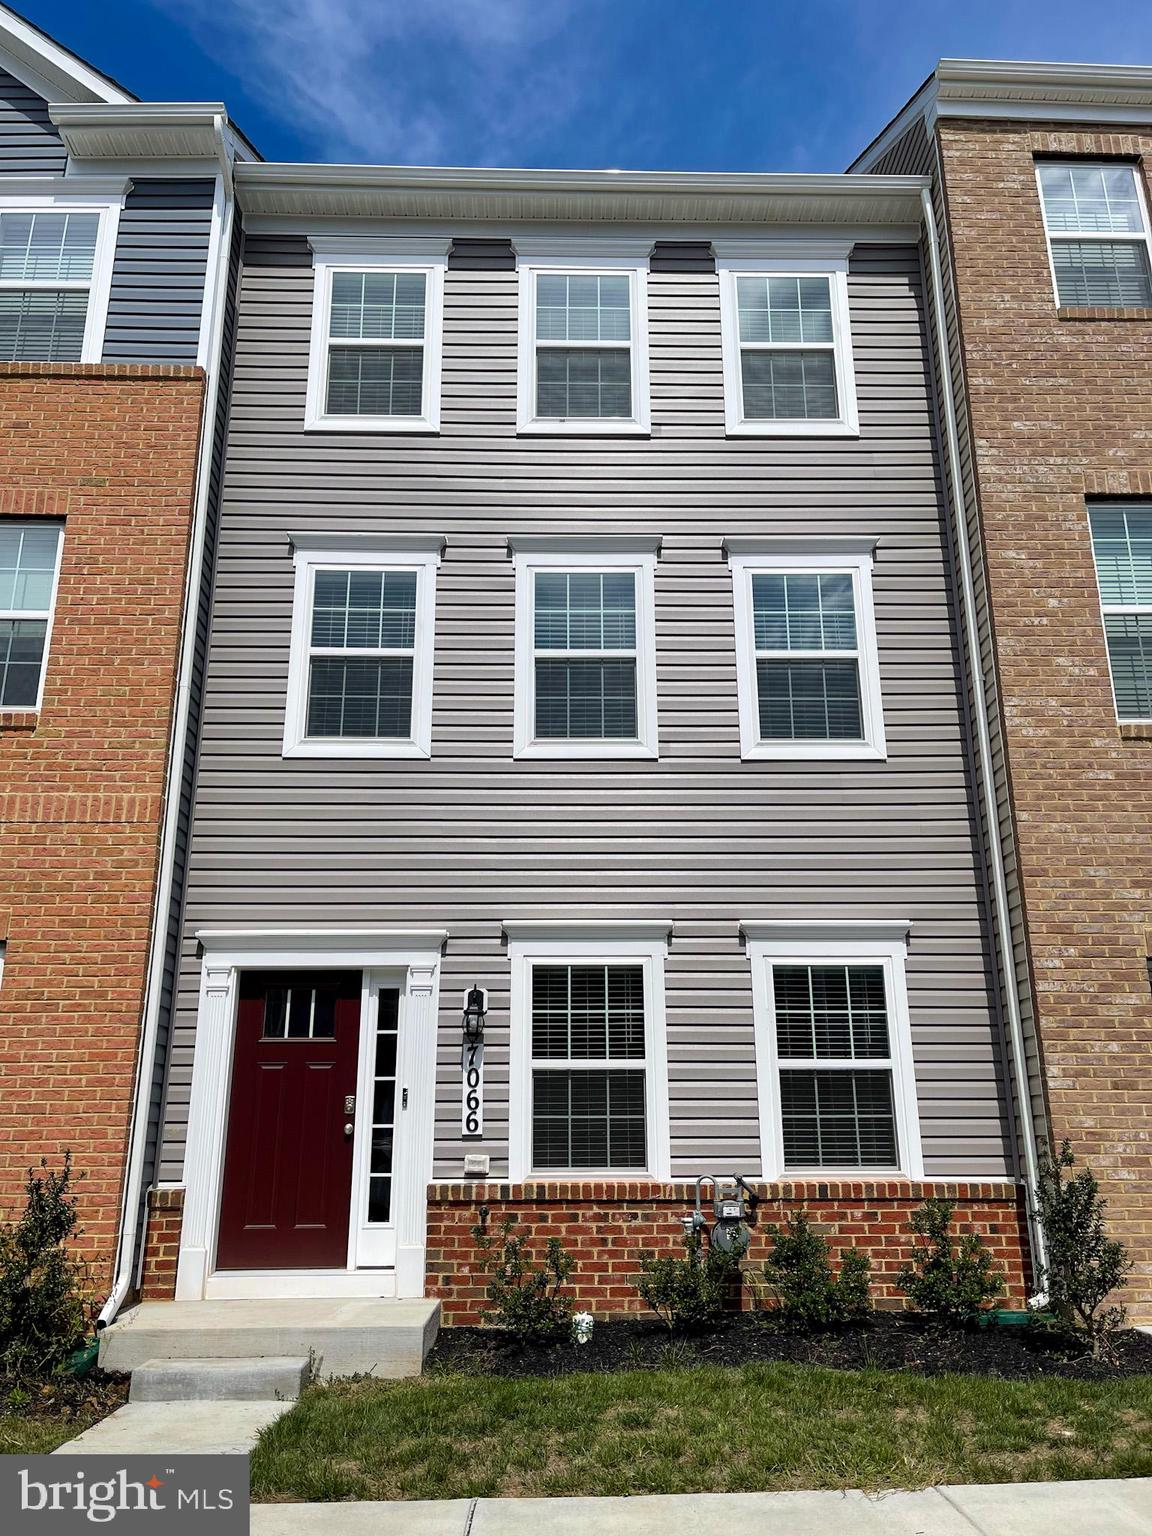 Brand new 1,962 sq ft. 2 car garage townhome with 3 bedrooms/2.5 bathrooms located within walking di